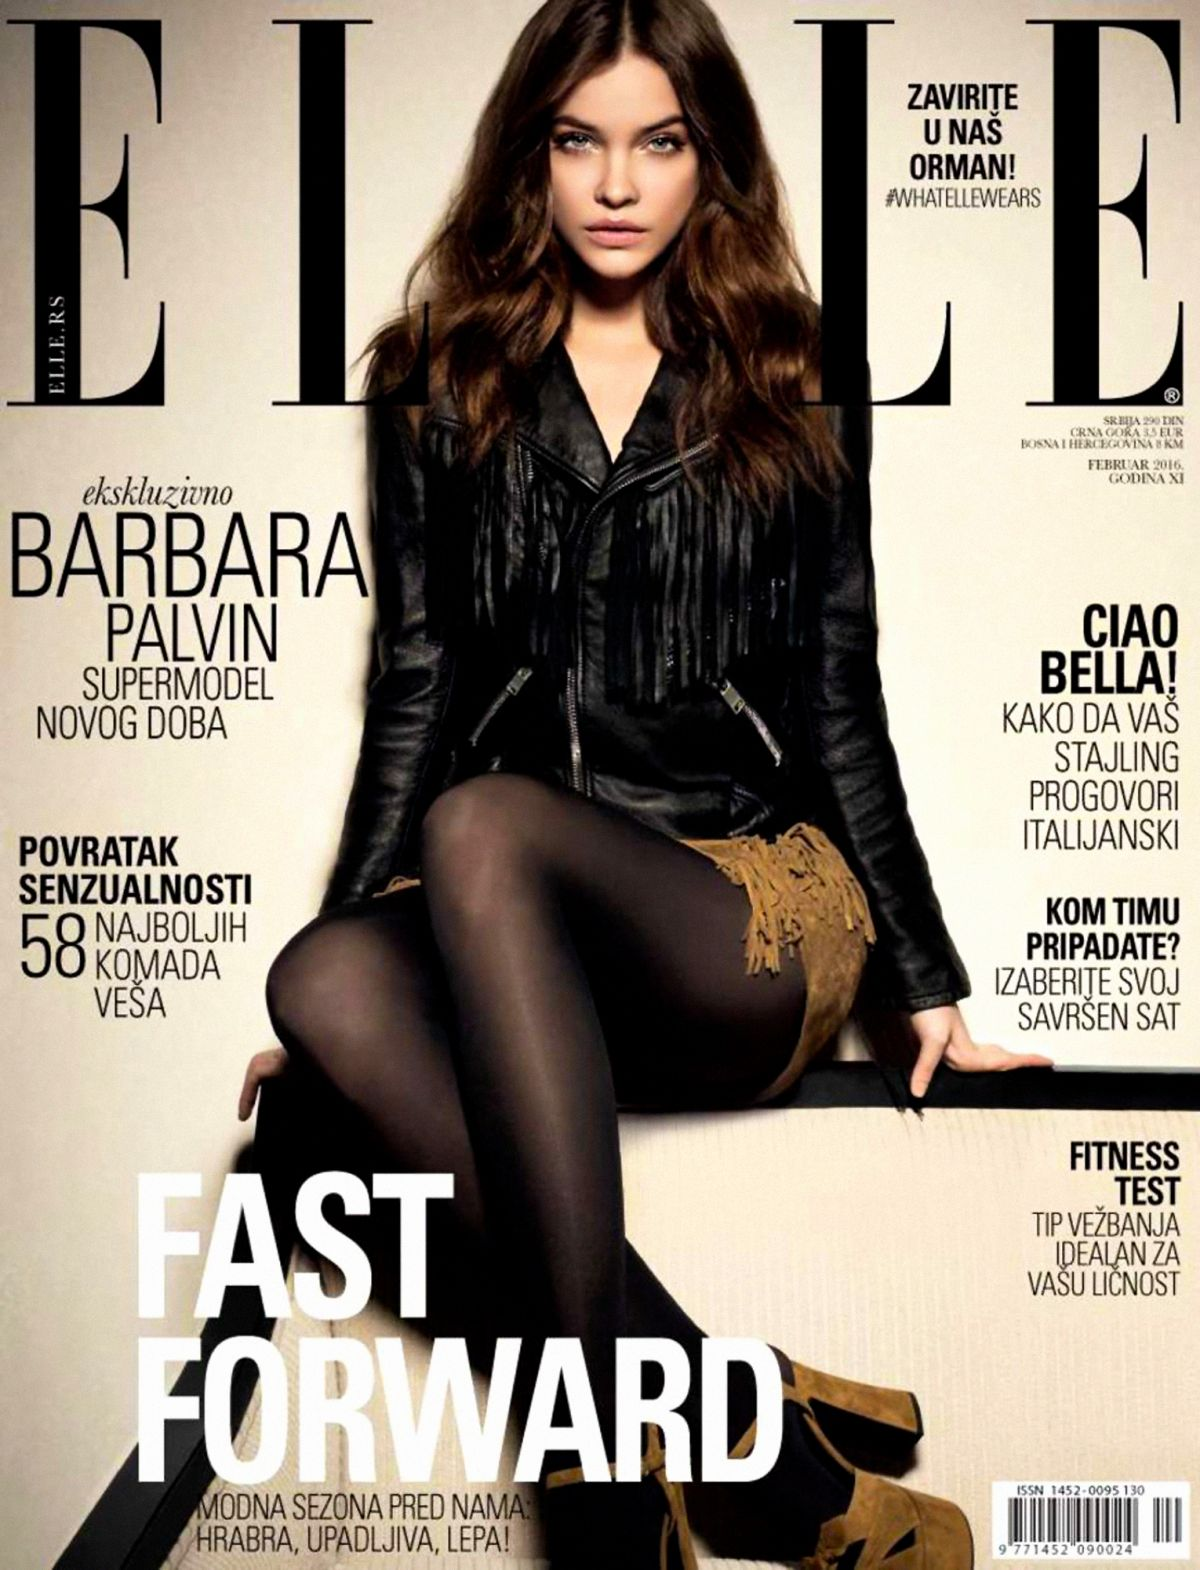 BARBARA PALVIN on the Cover of Elle Magaine, Serbia Frebruary 2016 Issue